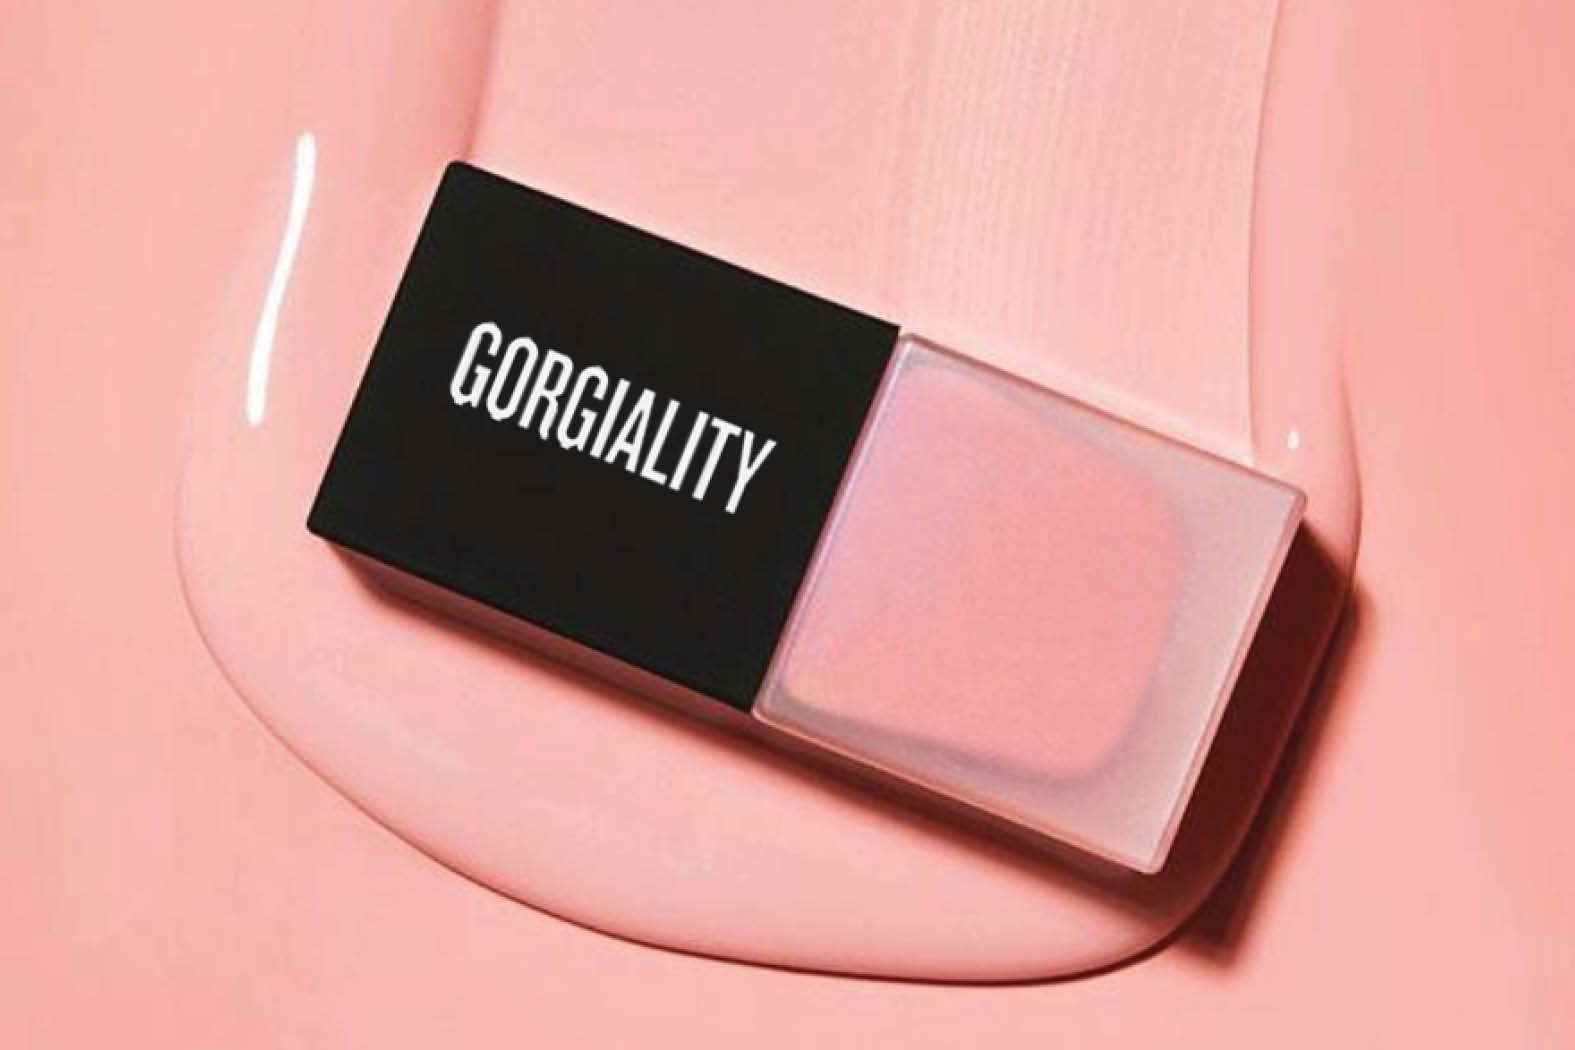 Form SIte Gorgiality Products wide 2.jpg